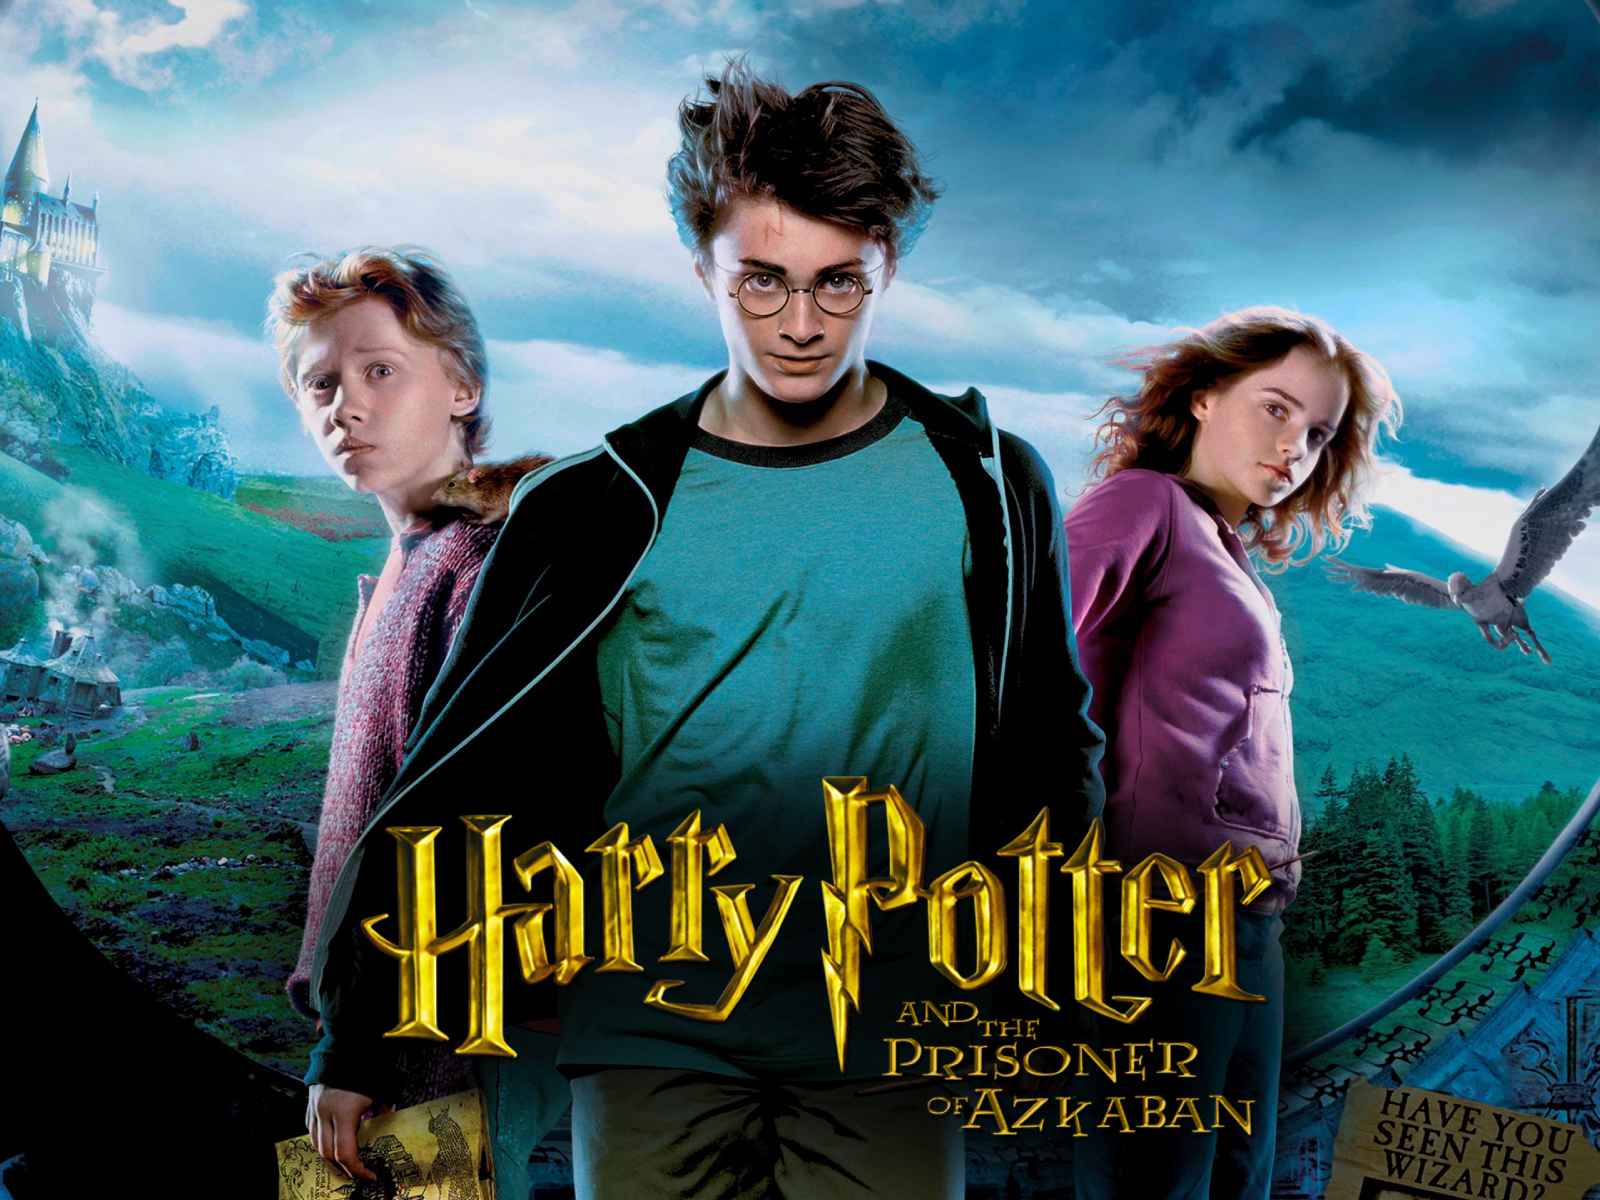 Harry's life is in mortal danger again, this time more than ever, in the third film in the series...